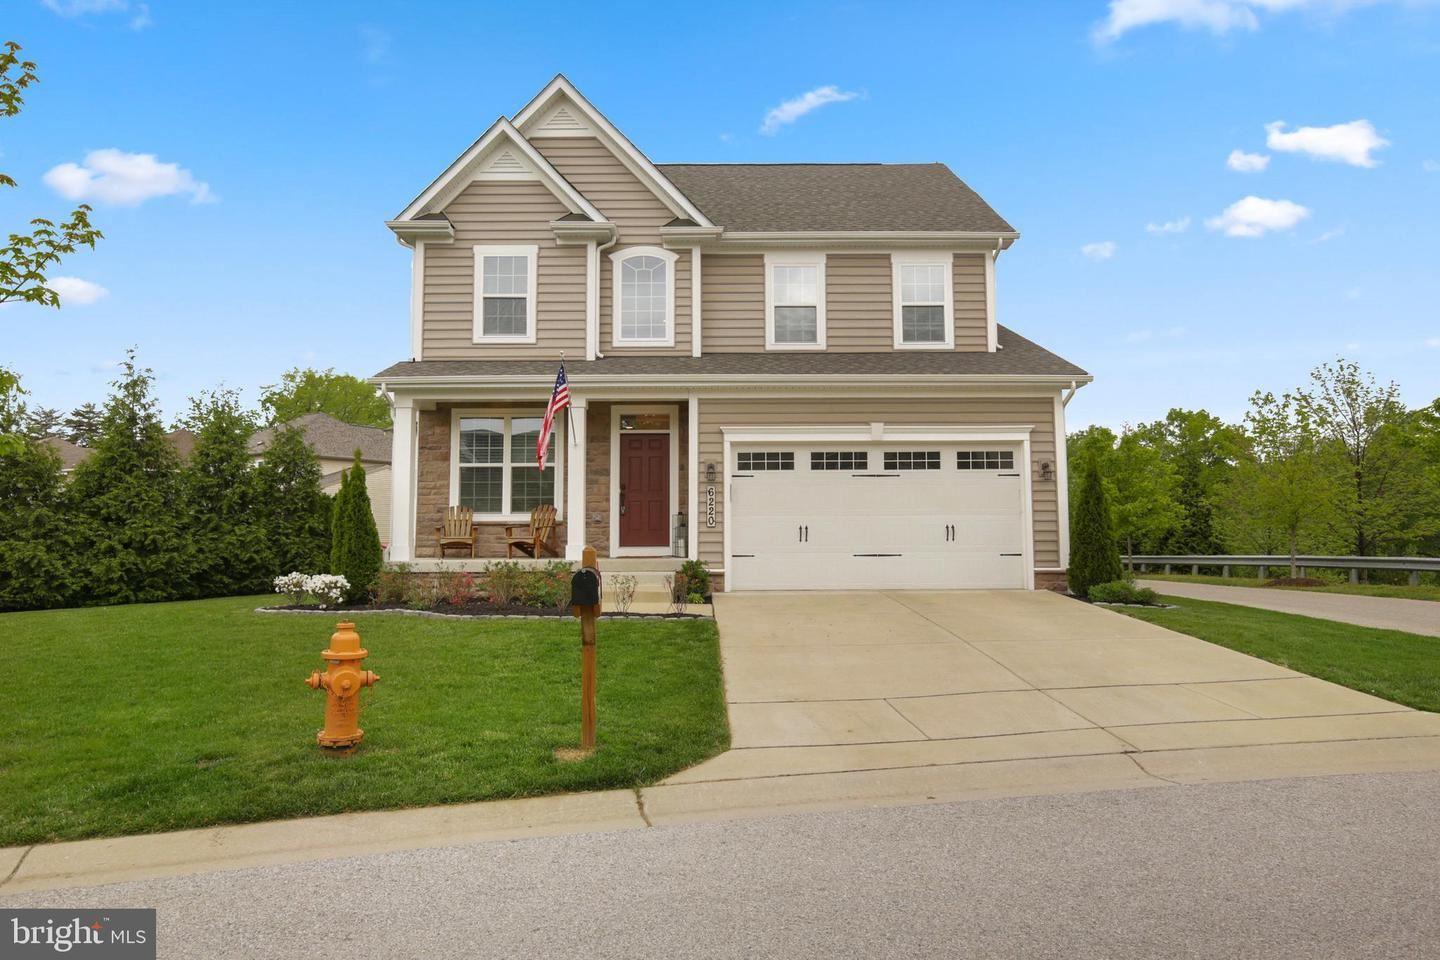 6220 SUMMER HAVEN LN, Hanover, MD 21076 - MLS#: MDHW294162